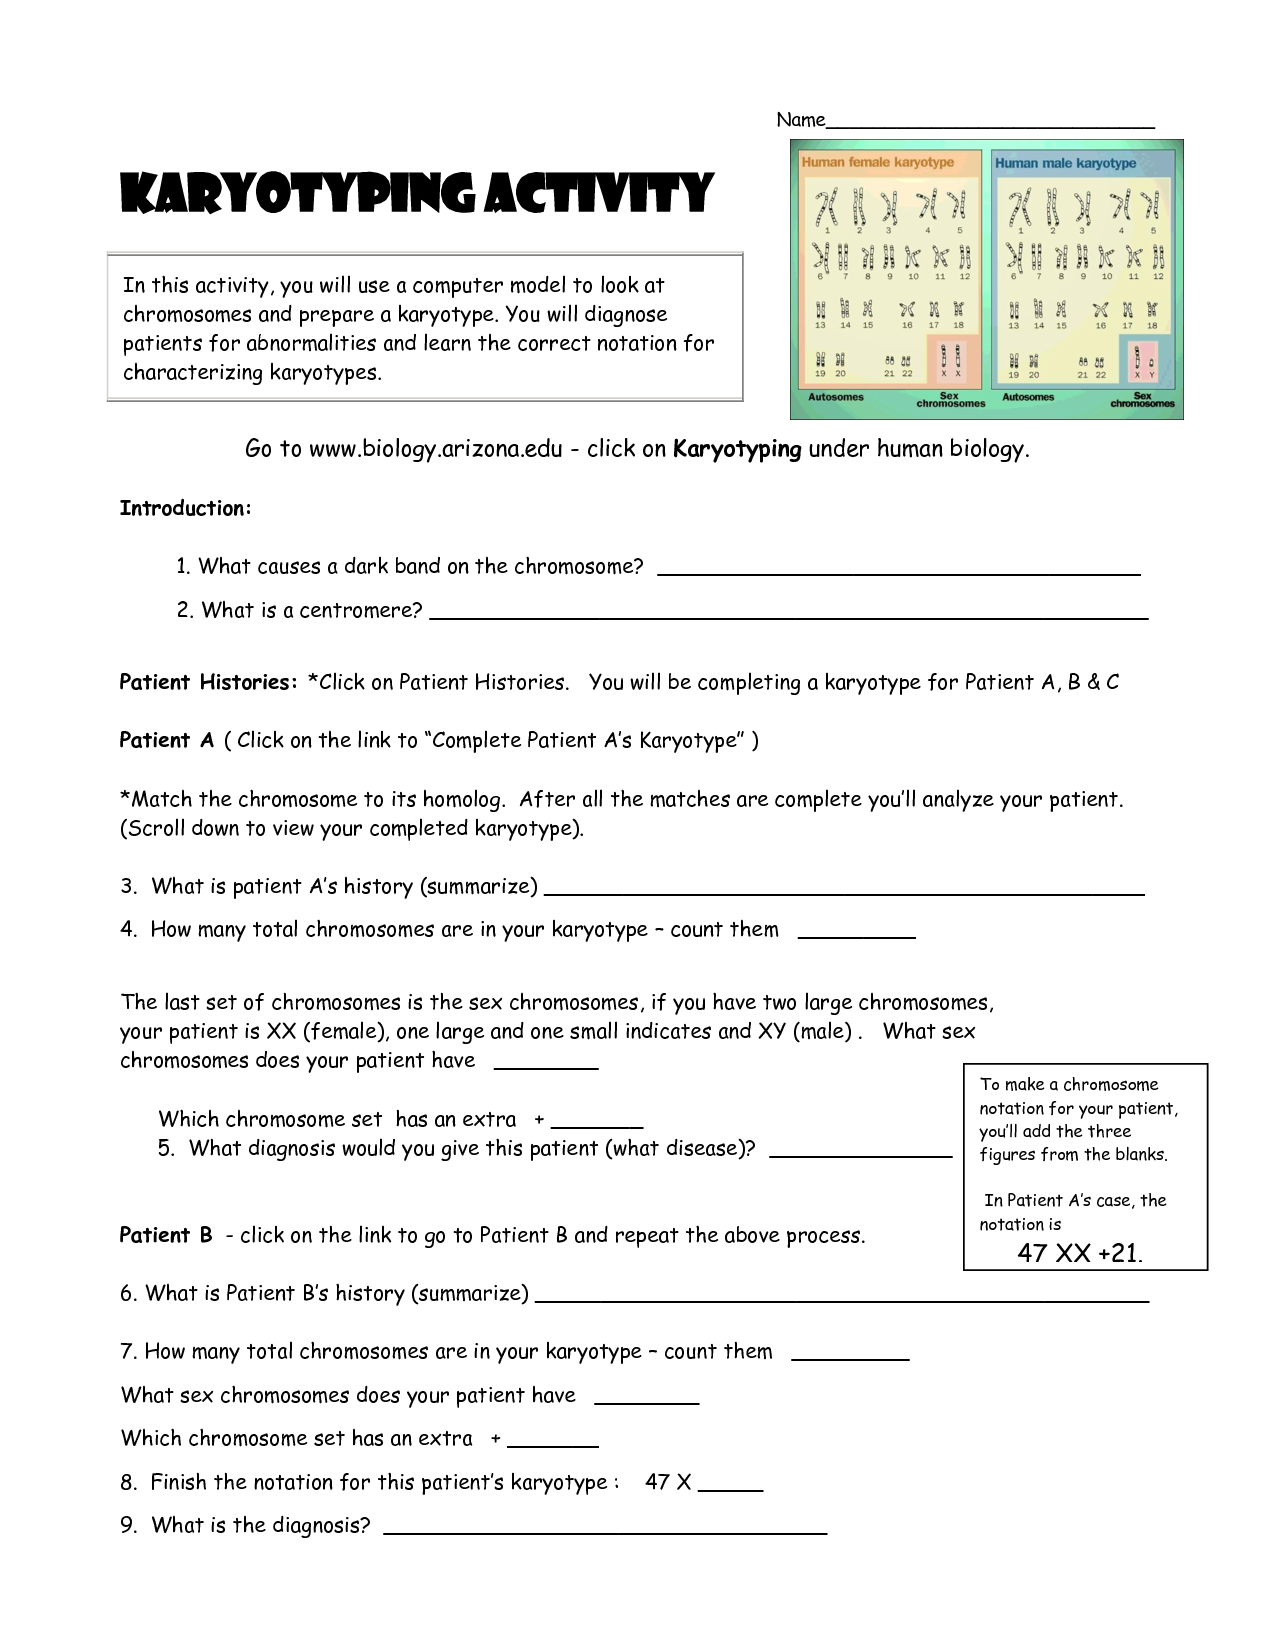 Karyotyping Activity Doc Teaching Stuff Teaching